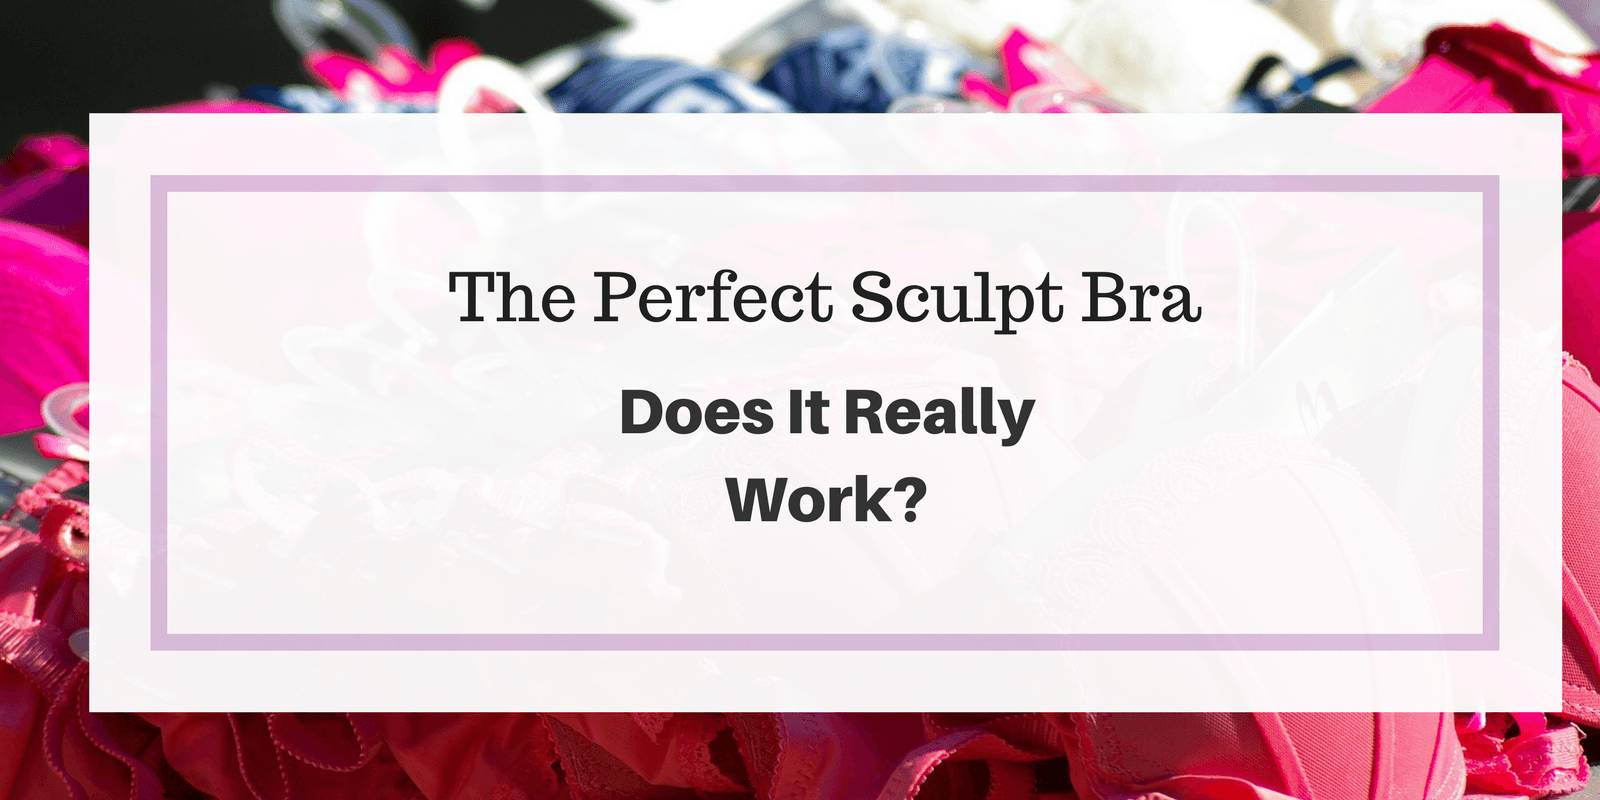 The Perfect Sculpt Bra